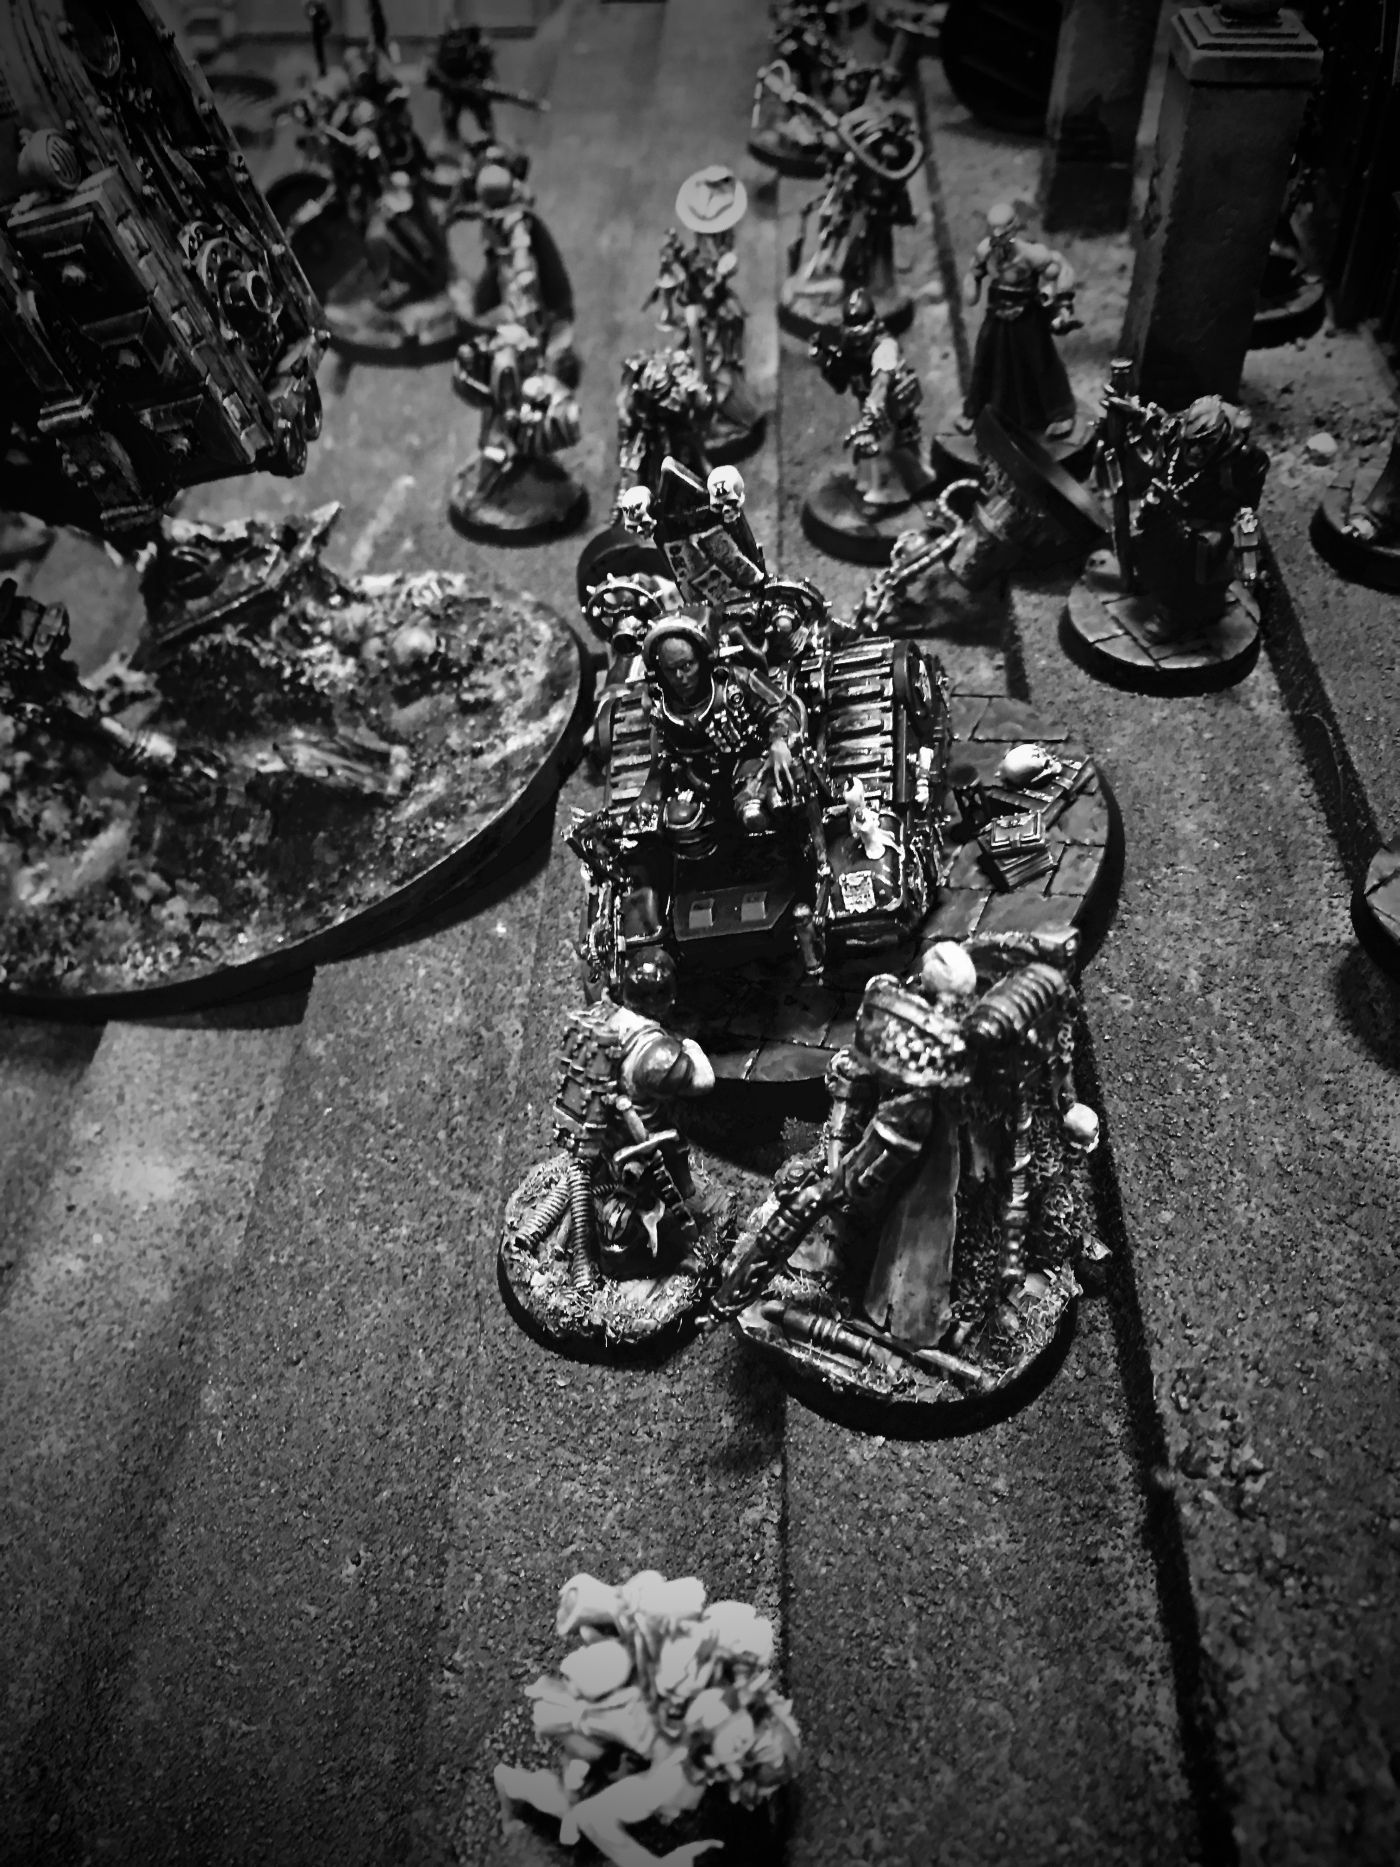 + The Sentinel has made his way up to look after the new born, Astartes instincts recognizing the young ones importance through void shields and mass of bodies. With the Blazing Angel of war gone, the Red Church attacks the worn out Vogtemanne +